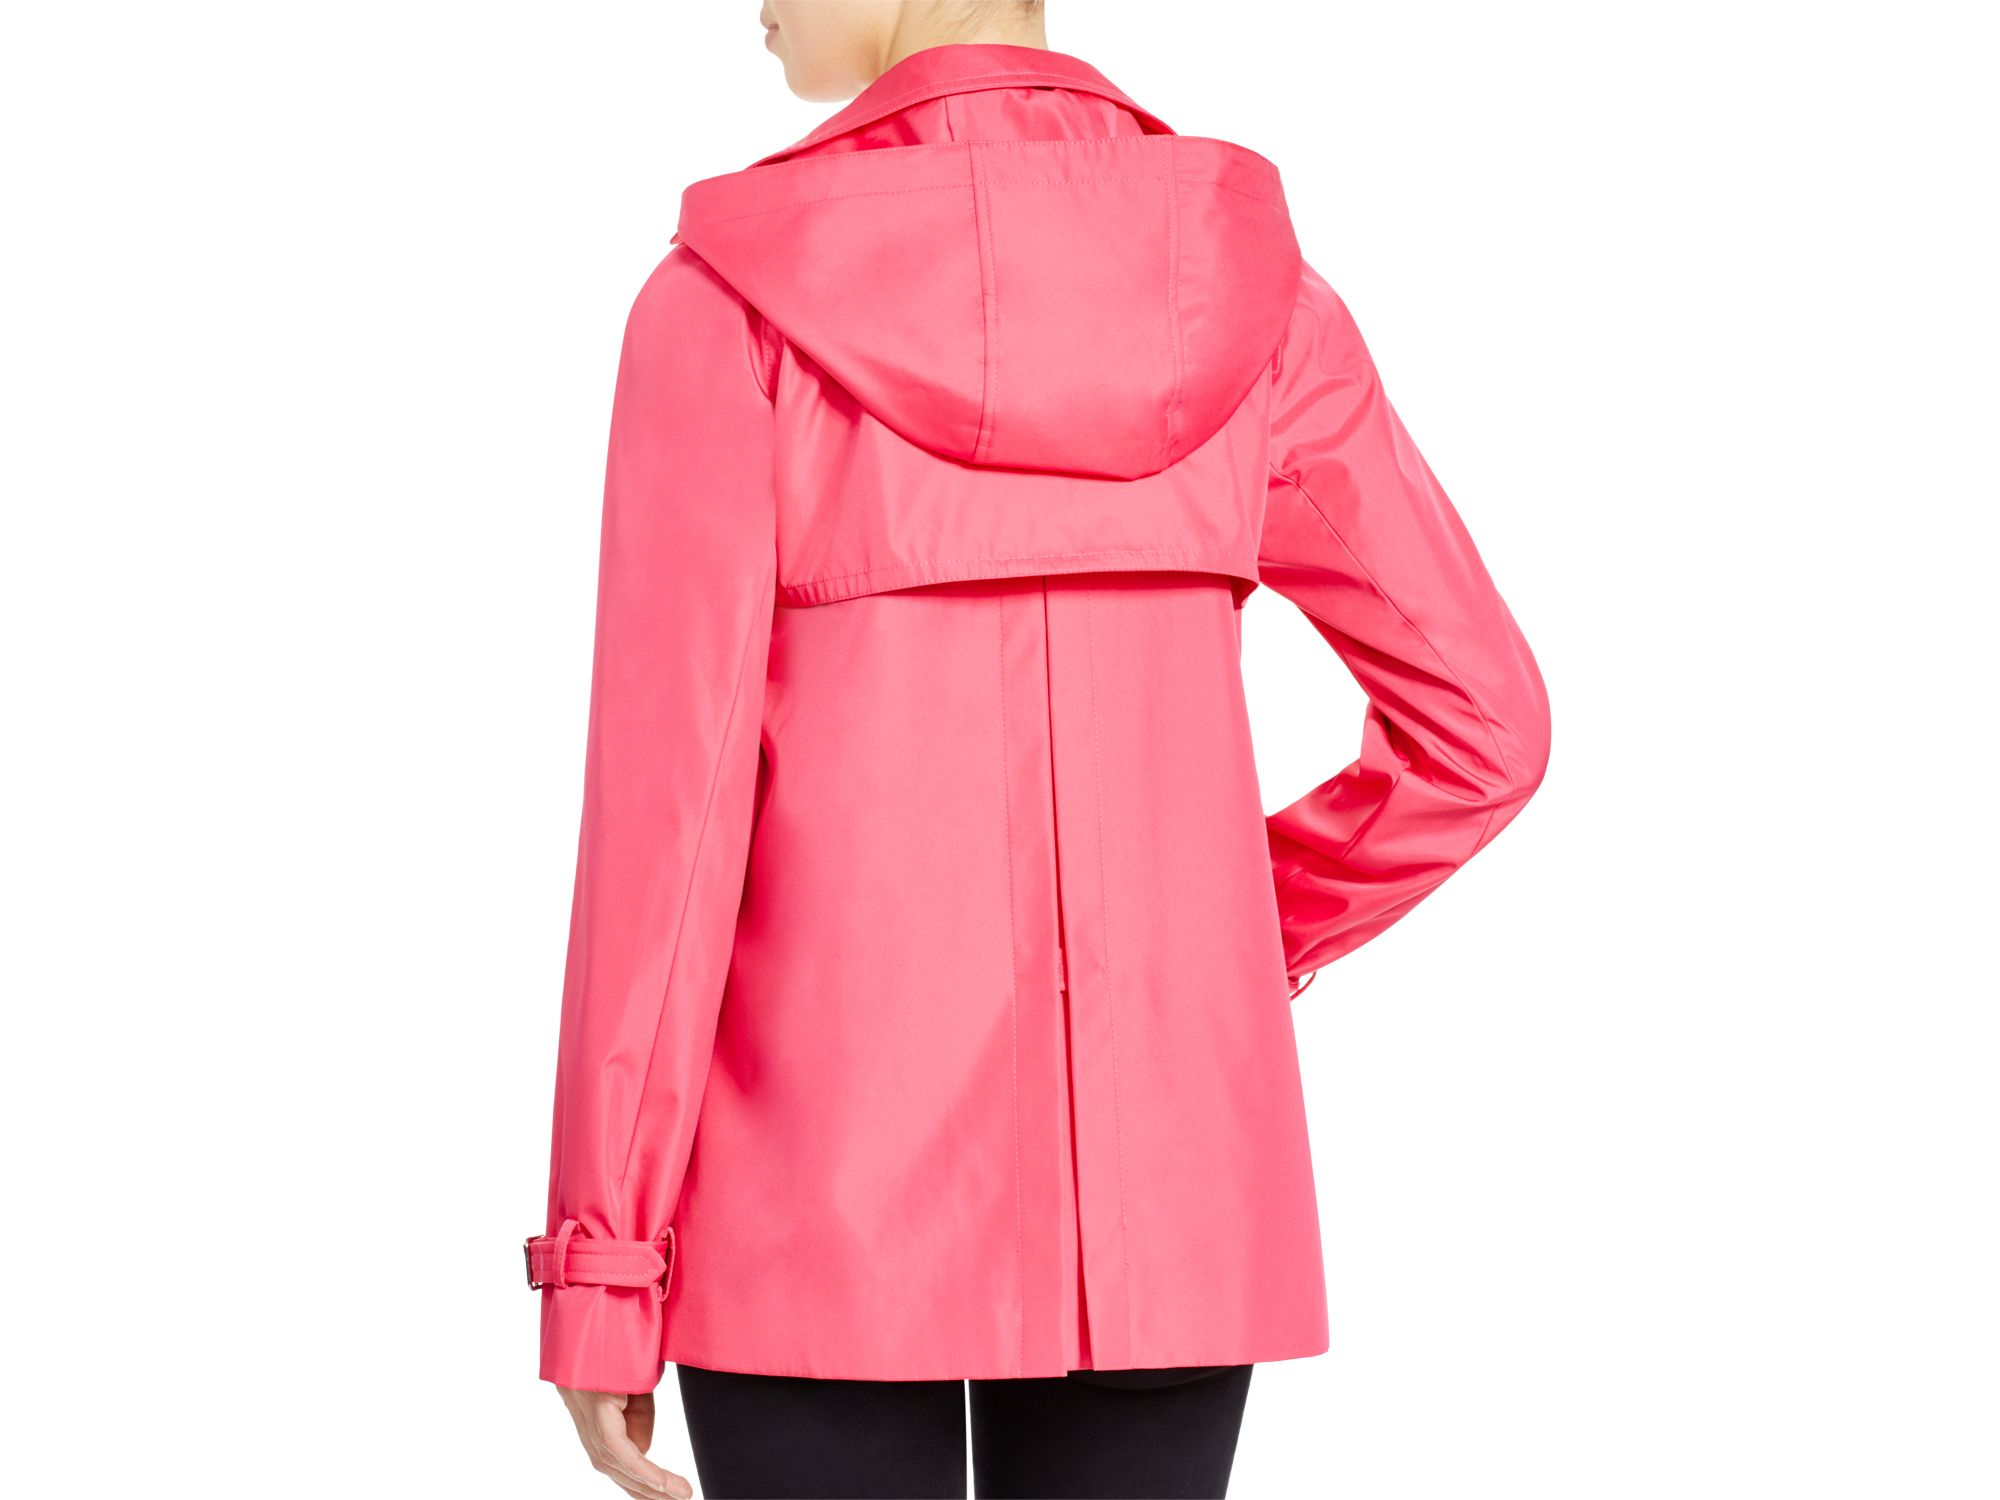 Calvin klein Double-breasted Short Raincoat in Pink | Lyst